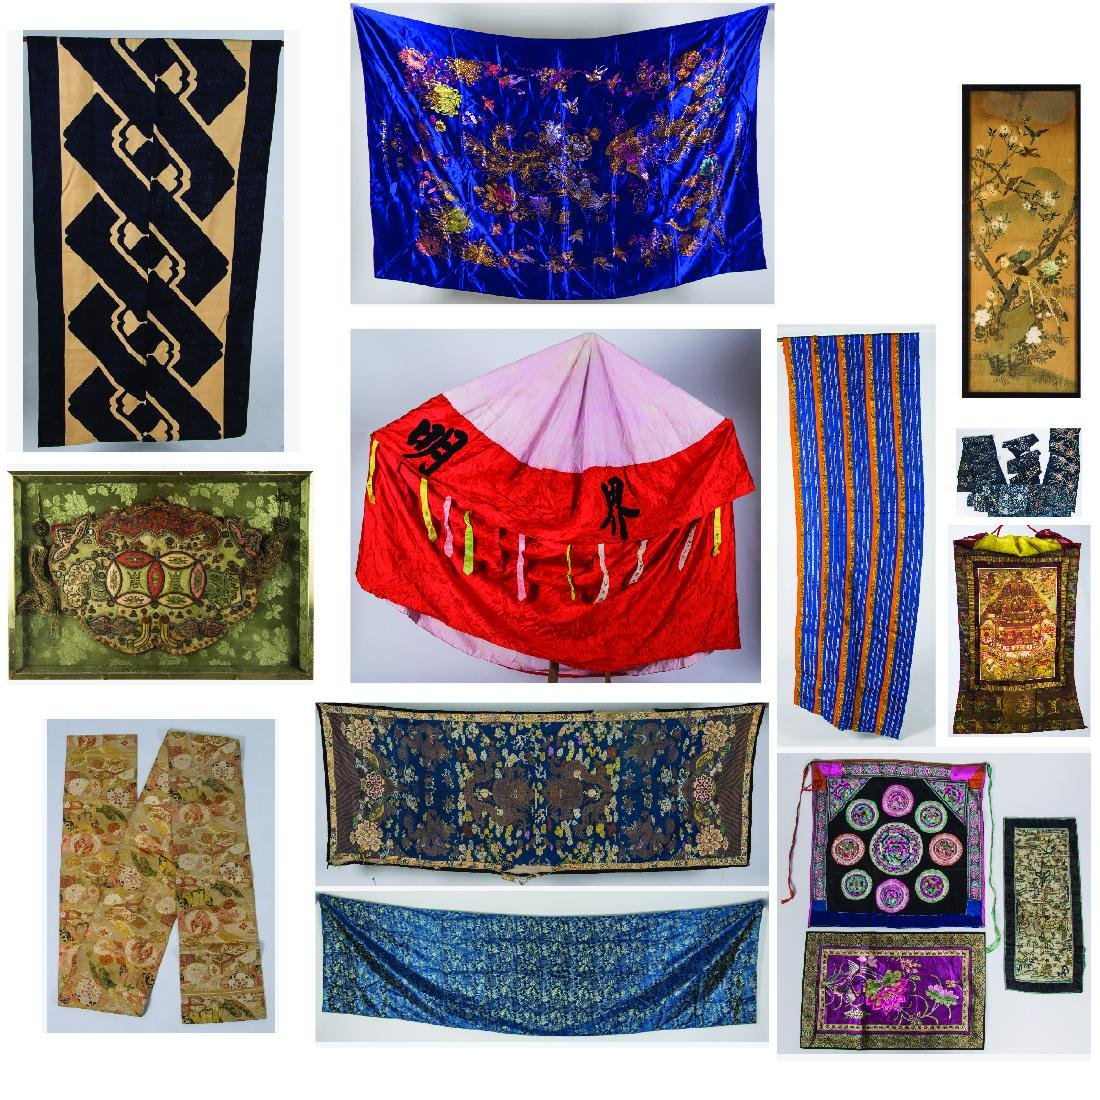 A Miscellaneous Collection of Asian Embroidered and